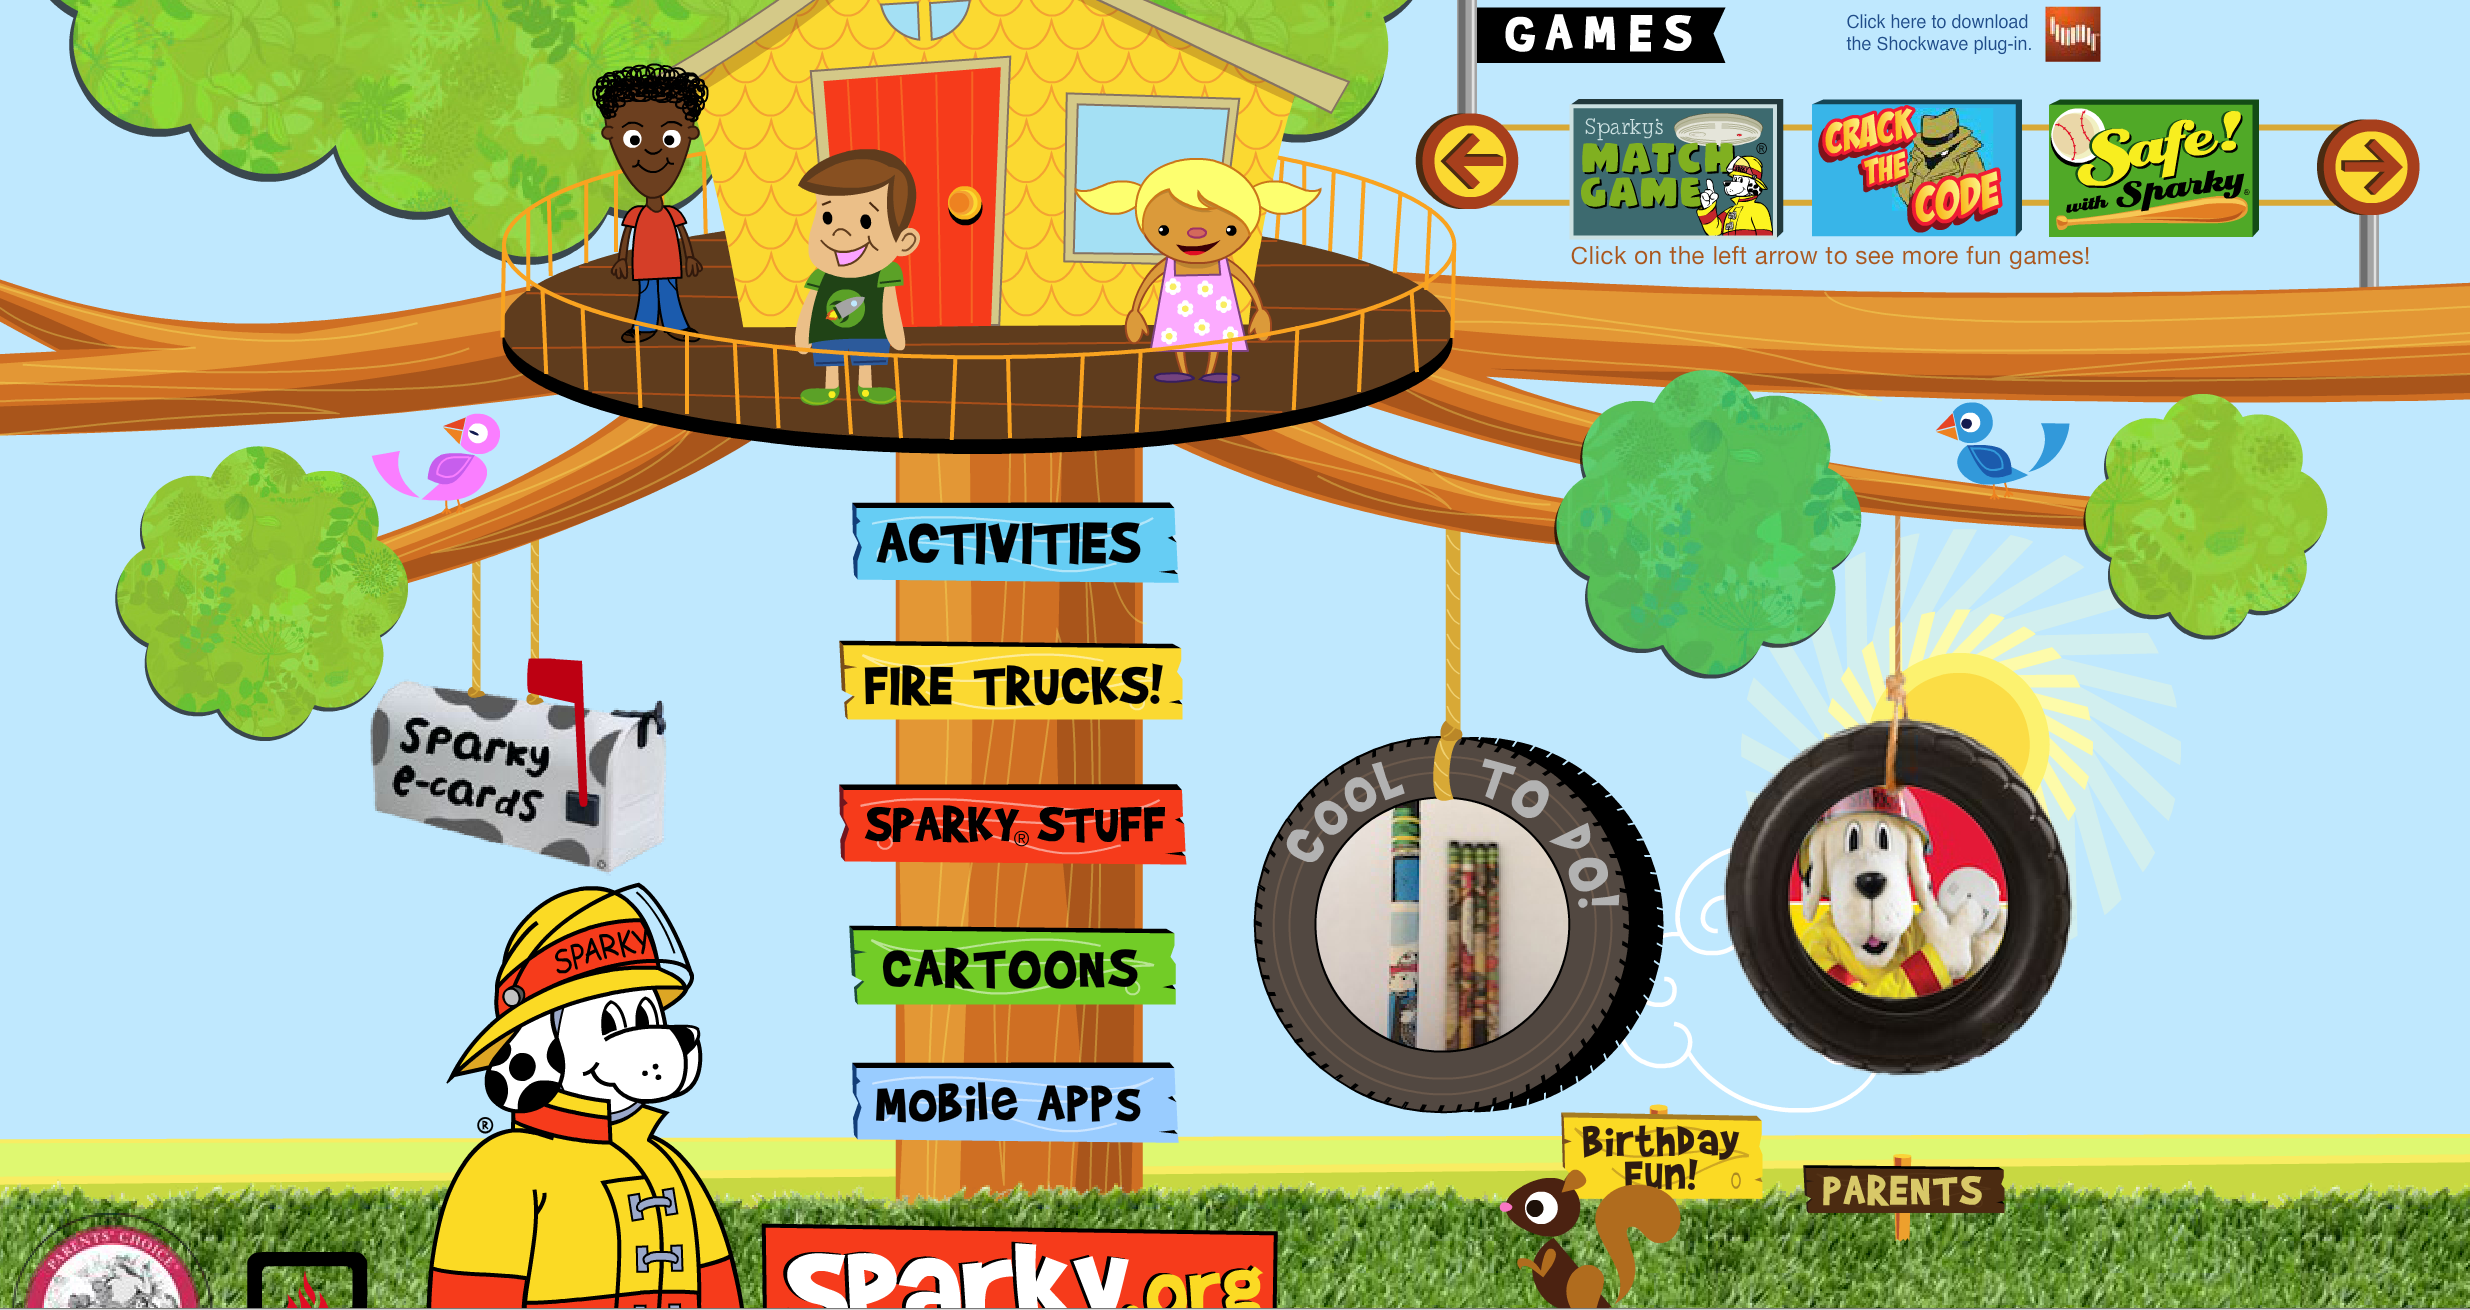 Fun interactive fire safety games with sparky the fire dog